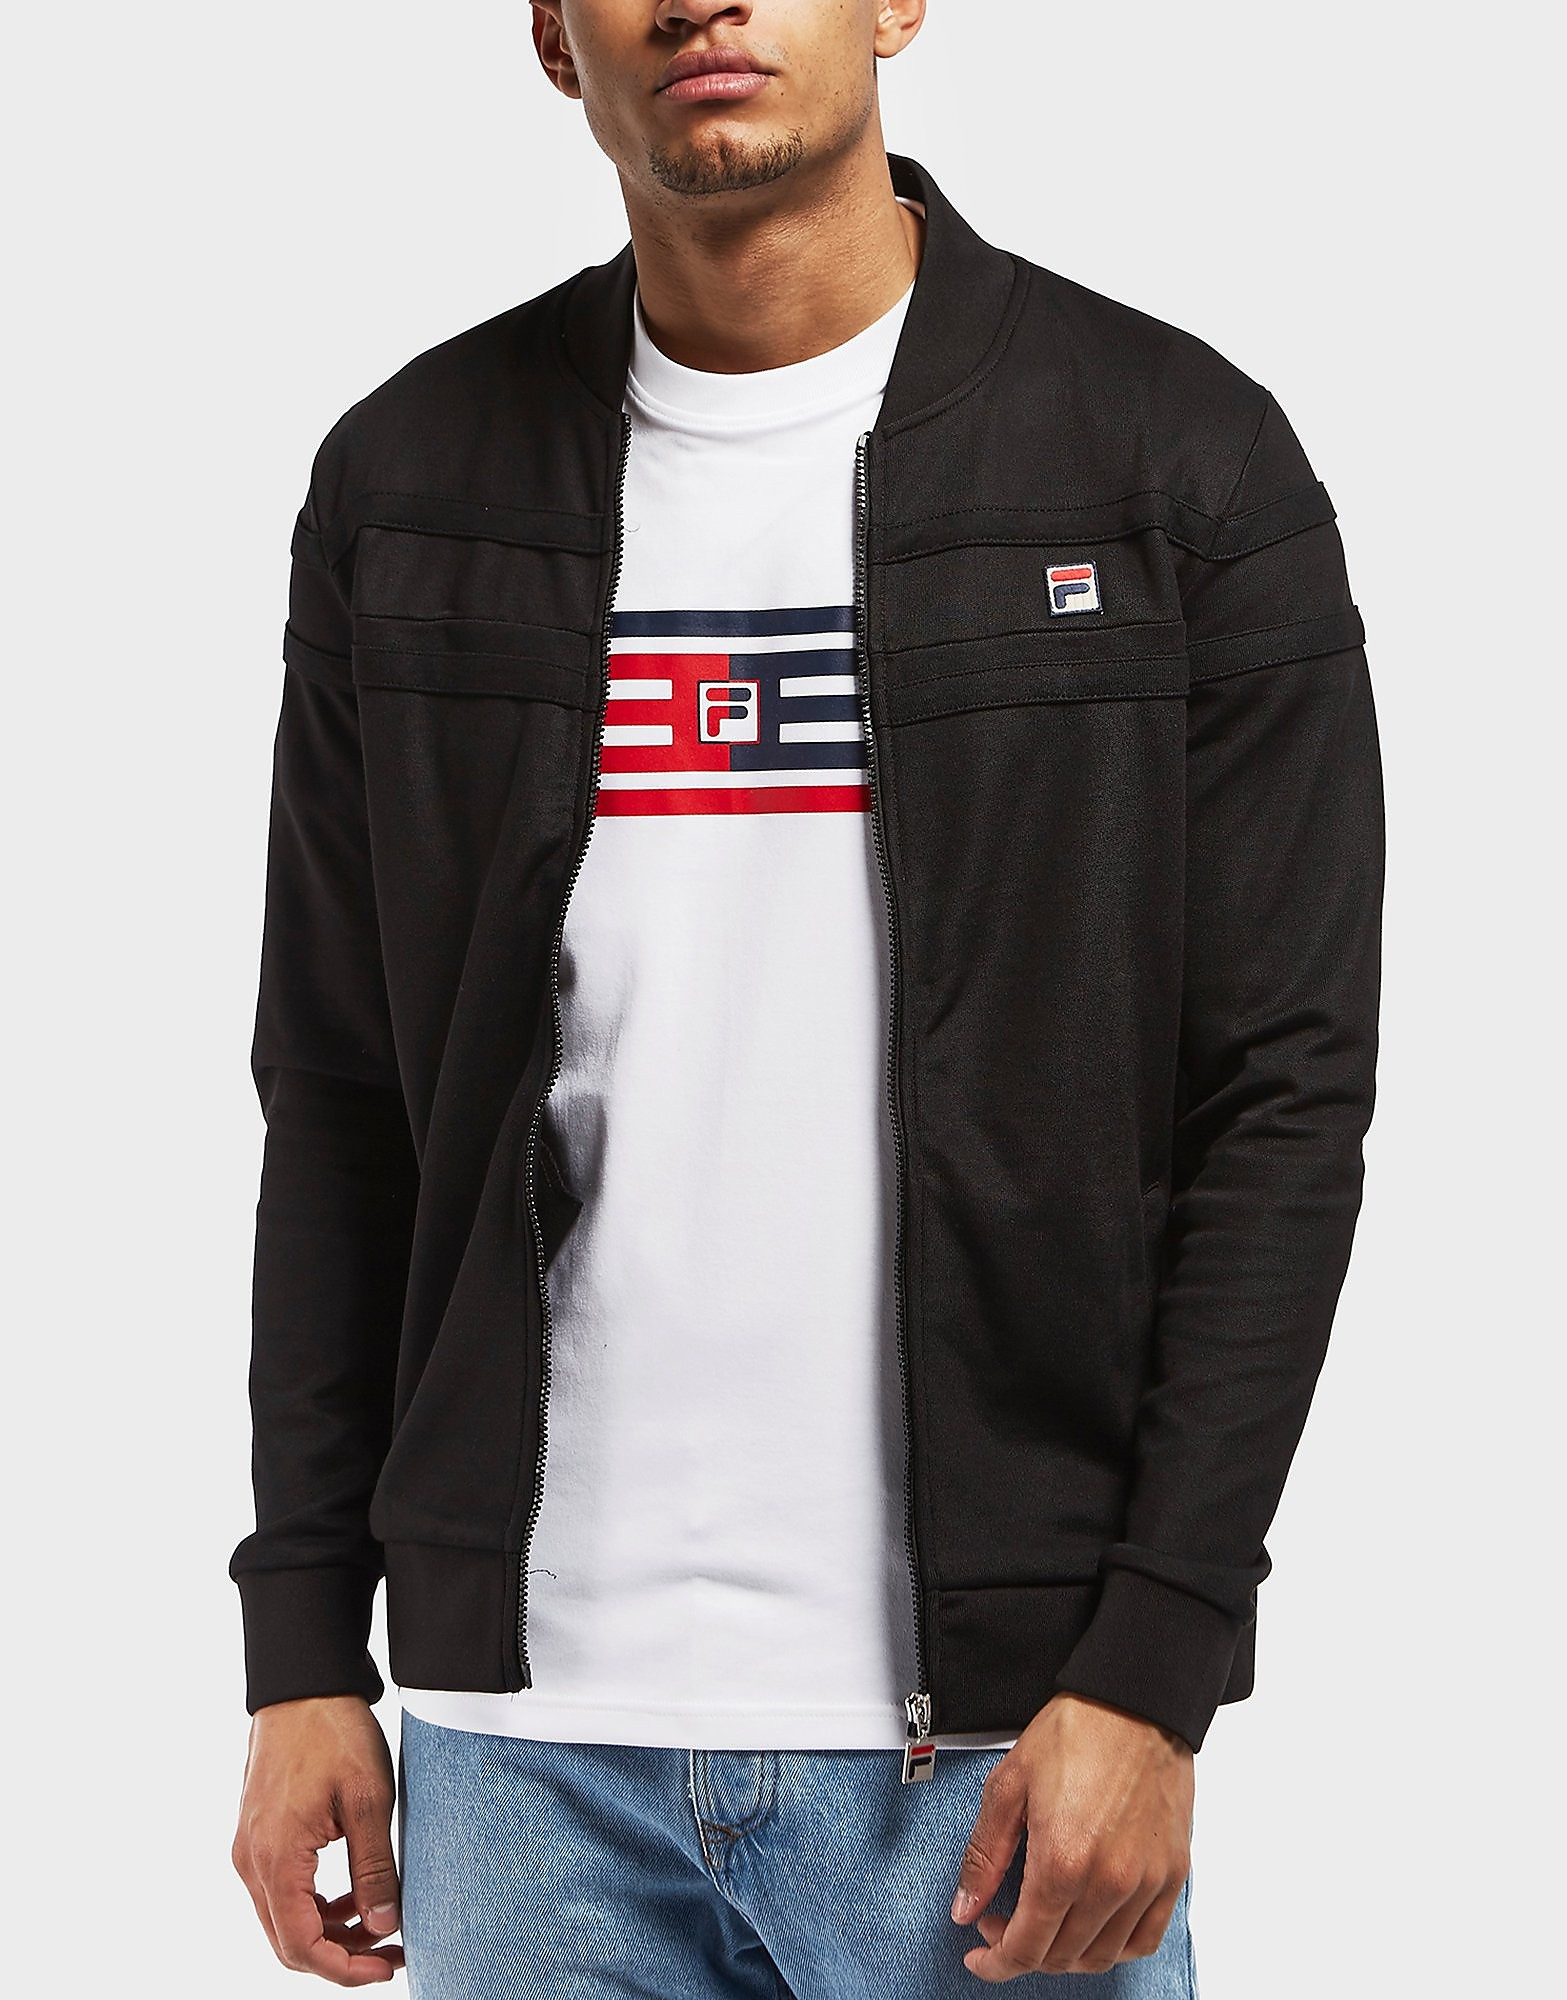 Fila Naso Pique Full Zip Track Top - Online Exclusive